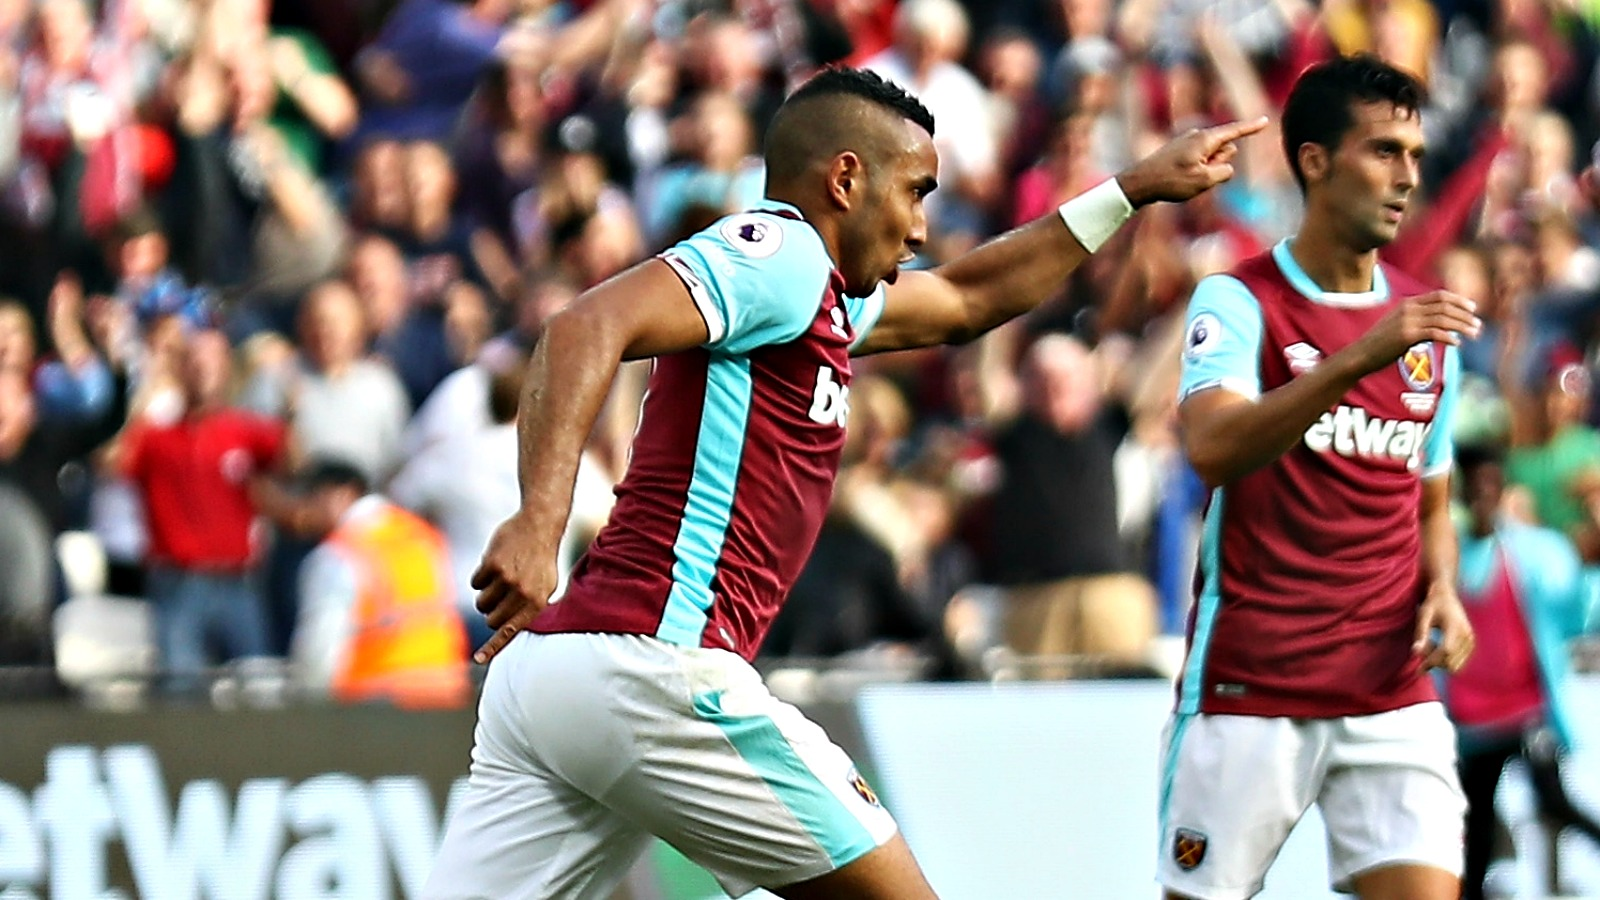 Watch Dimitri Payet score a goal that was compared to Lionel Messi's